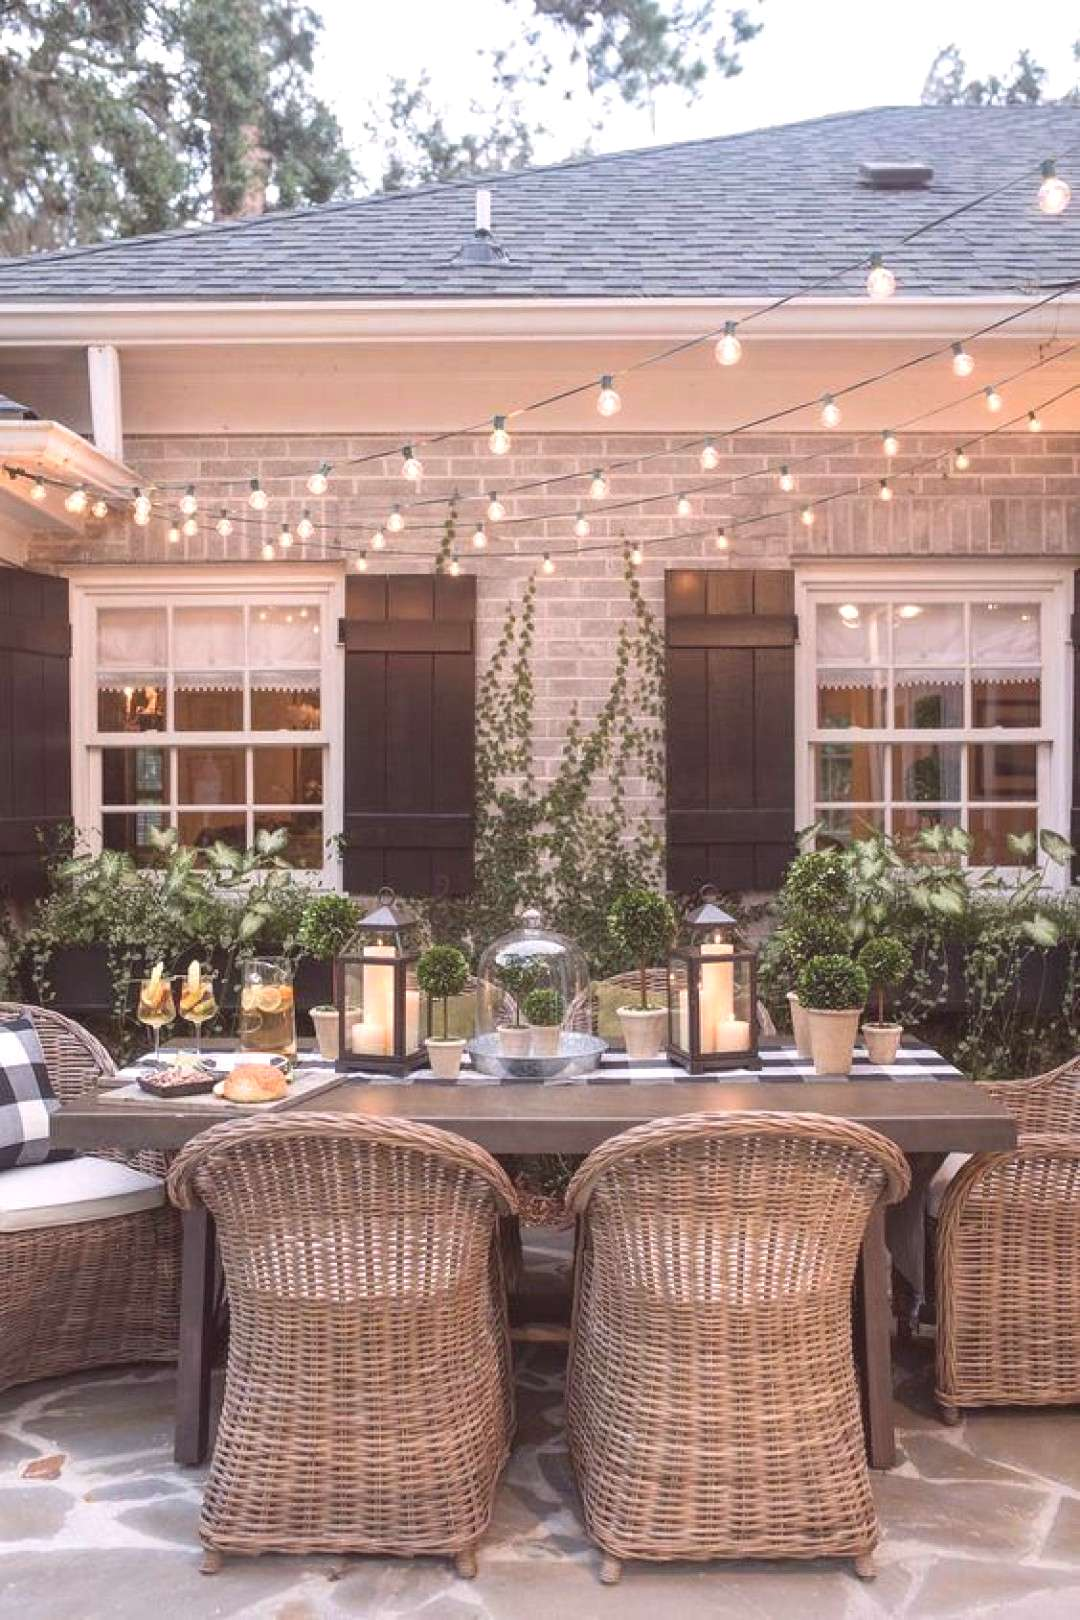 11 Affordable Ways to Update Your Patio this Summer | Posh Pennies#affordable